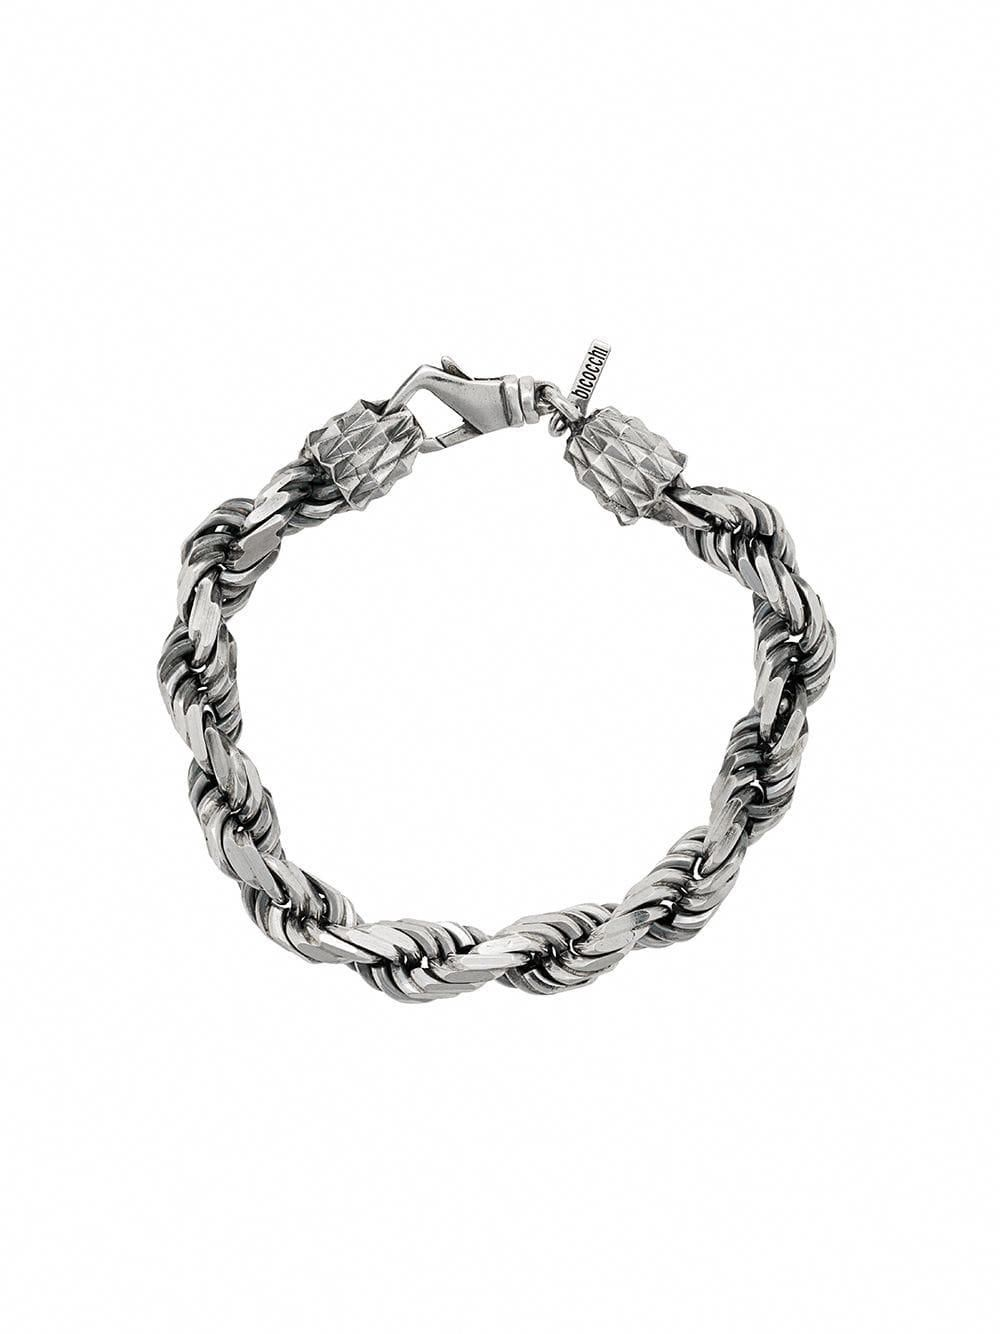 This twice tress strip band features semi-precious faceted